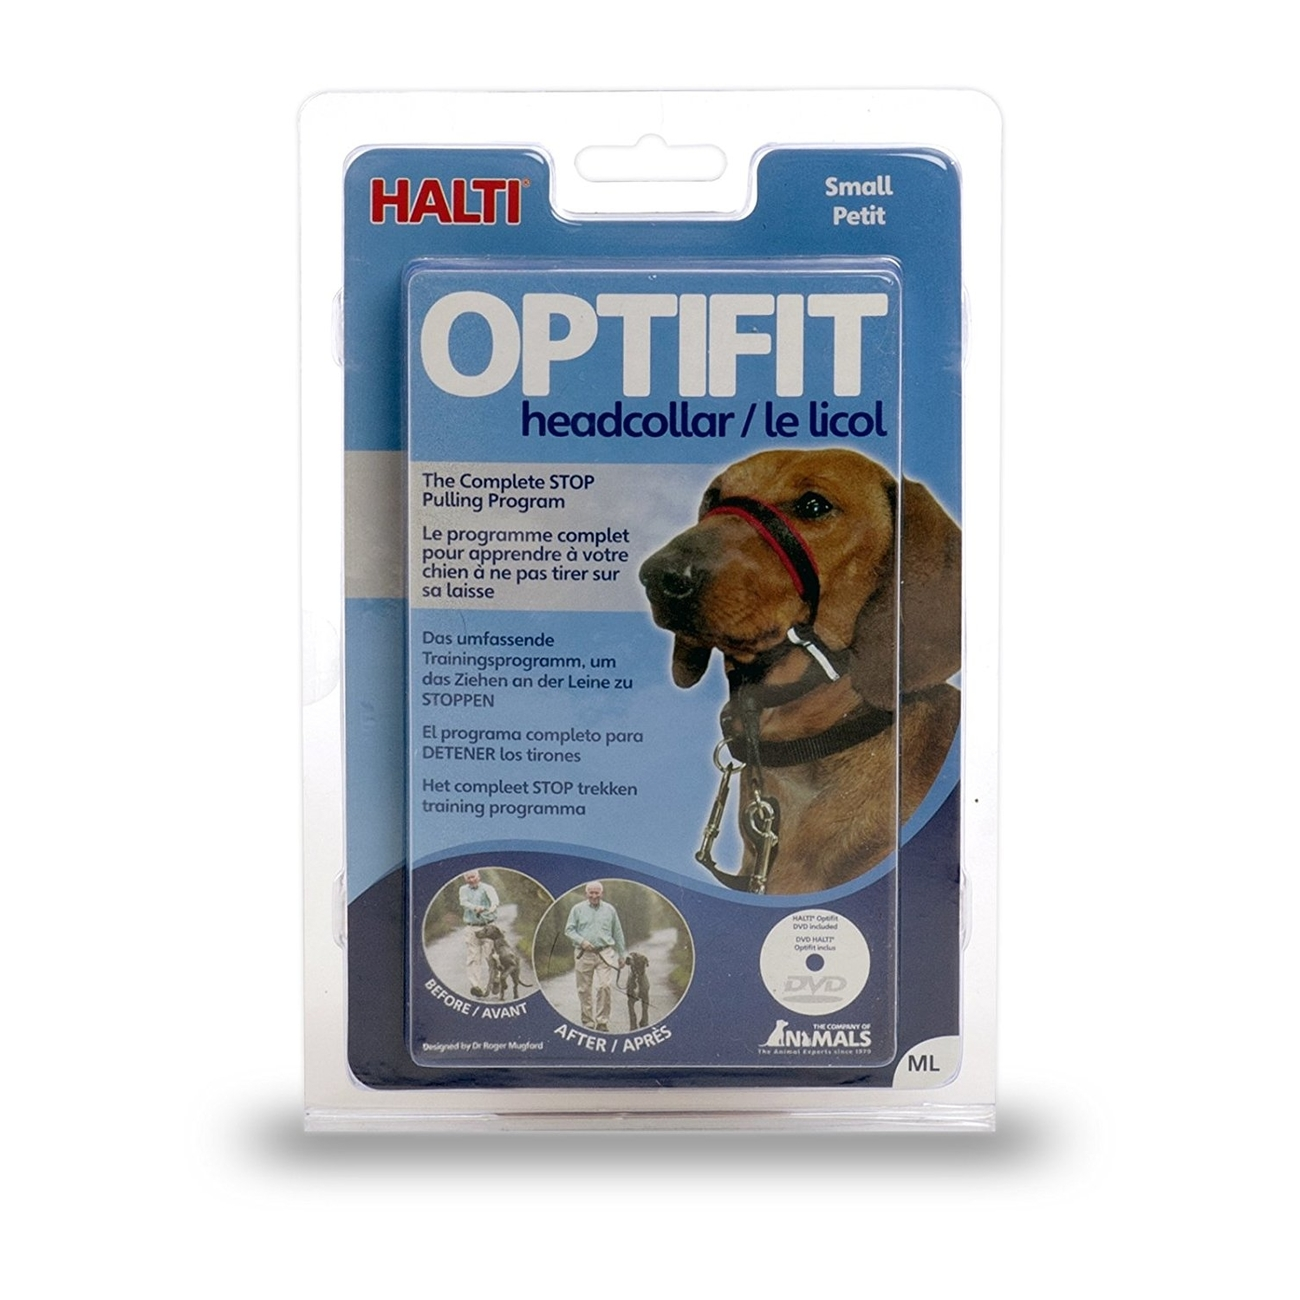 Company of Animals Halti OPTIFIT Headcollar, Bild 7